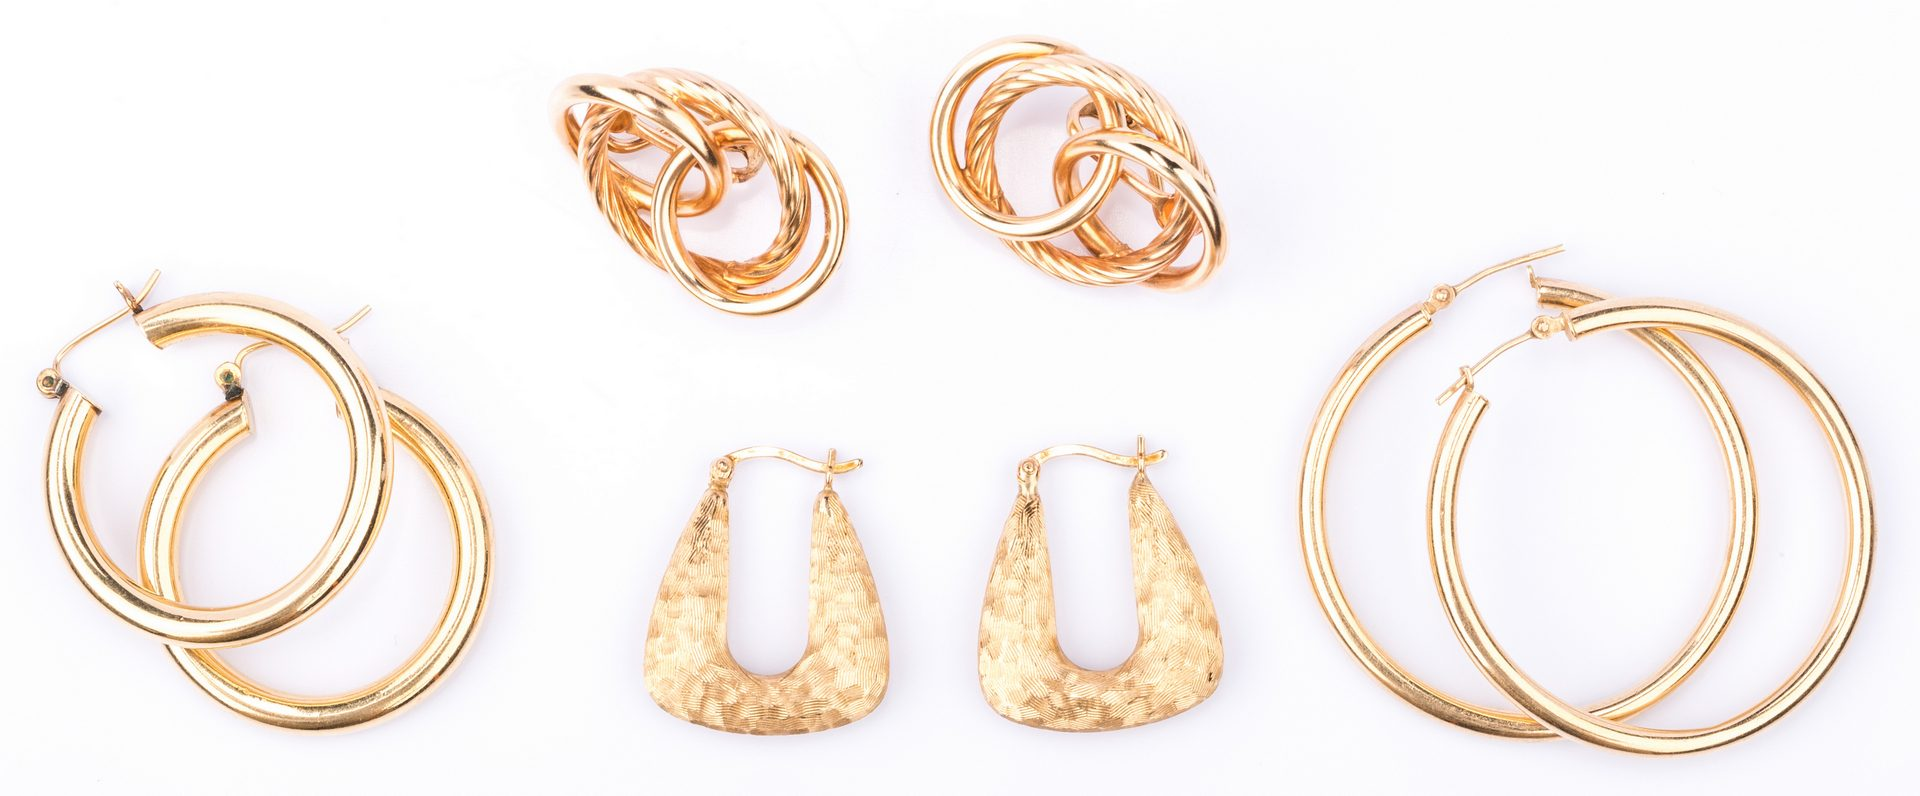 Lot 852: 4 pair 14K Earrings